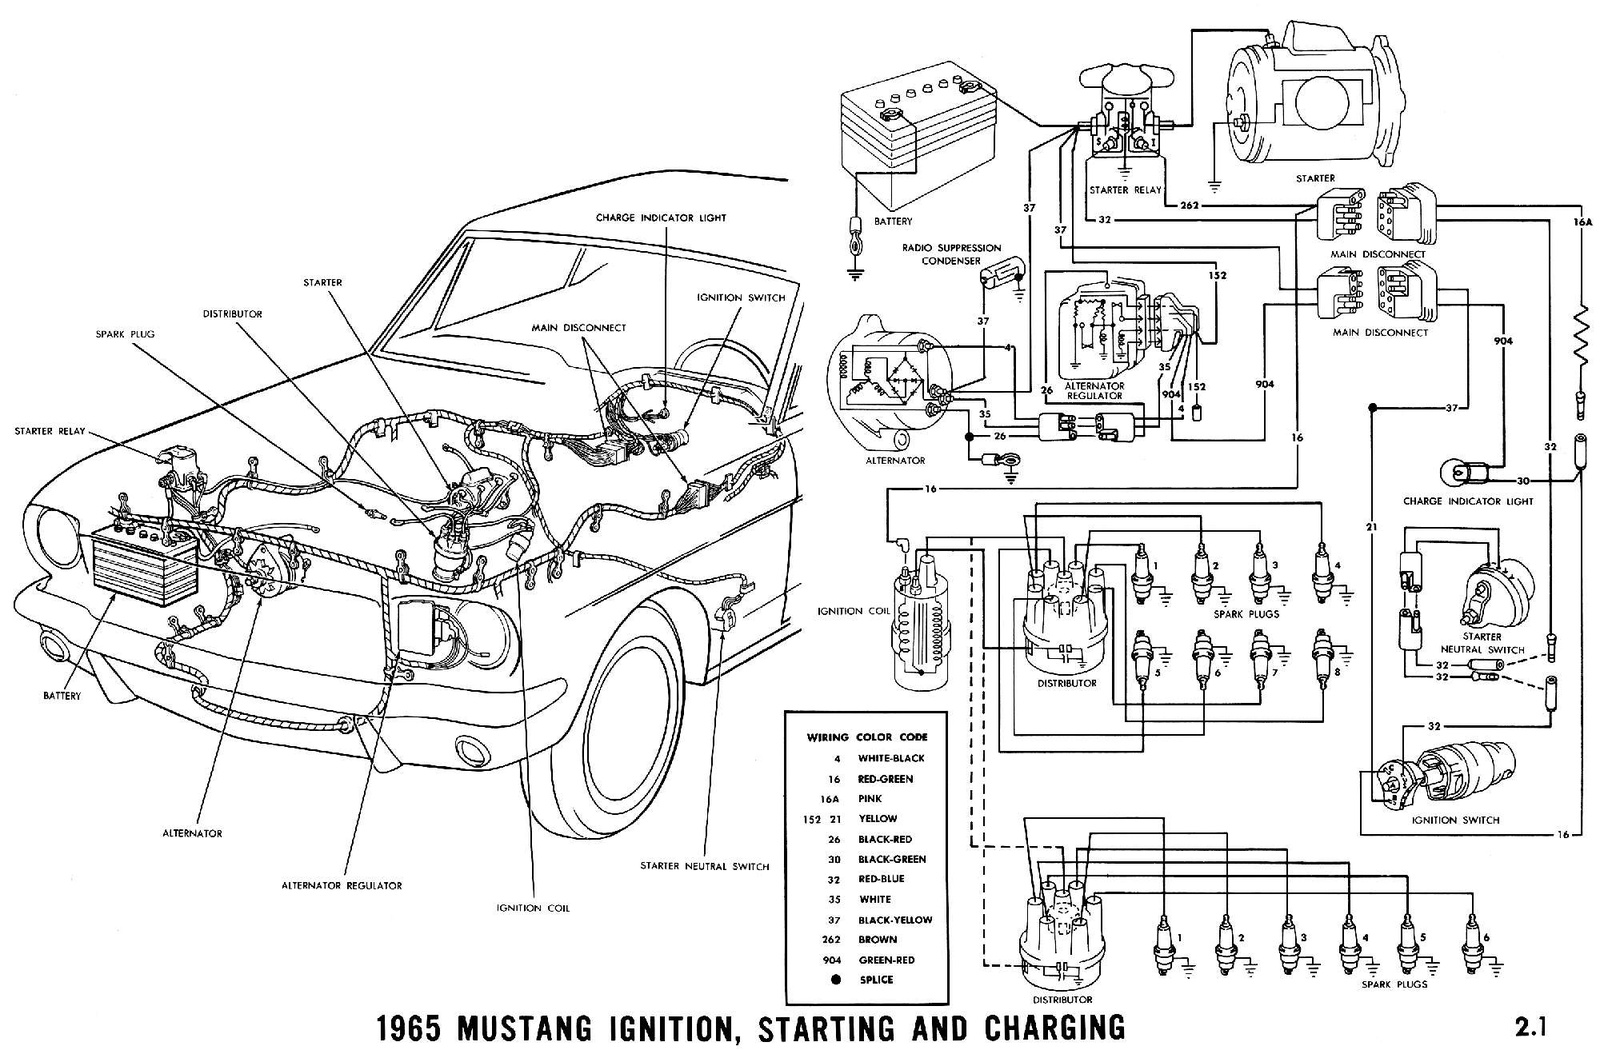 1967 Ford Electric Choke Wiring Starting Know About Diagram Kenwood Car Stereo Diagrams Kdc 416s Mustang Questions How To Install Wire On Rh Cargurus Com